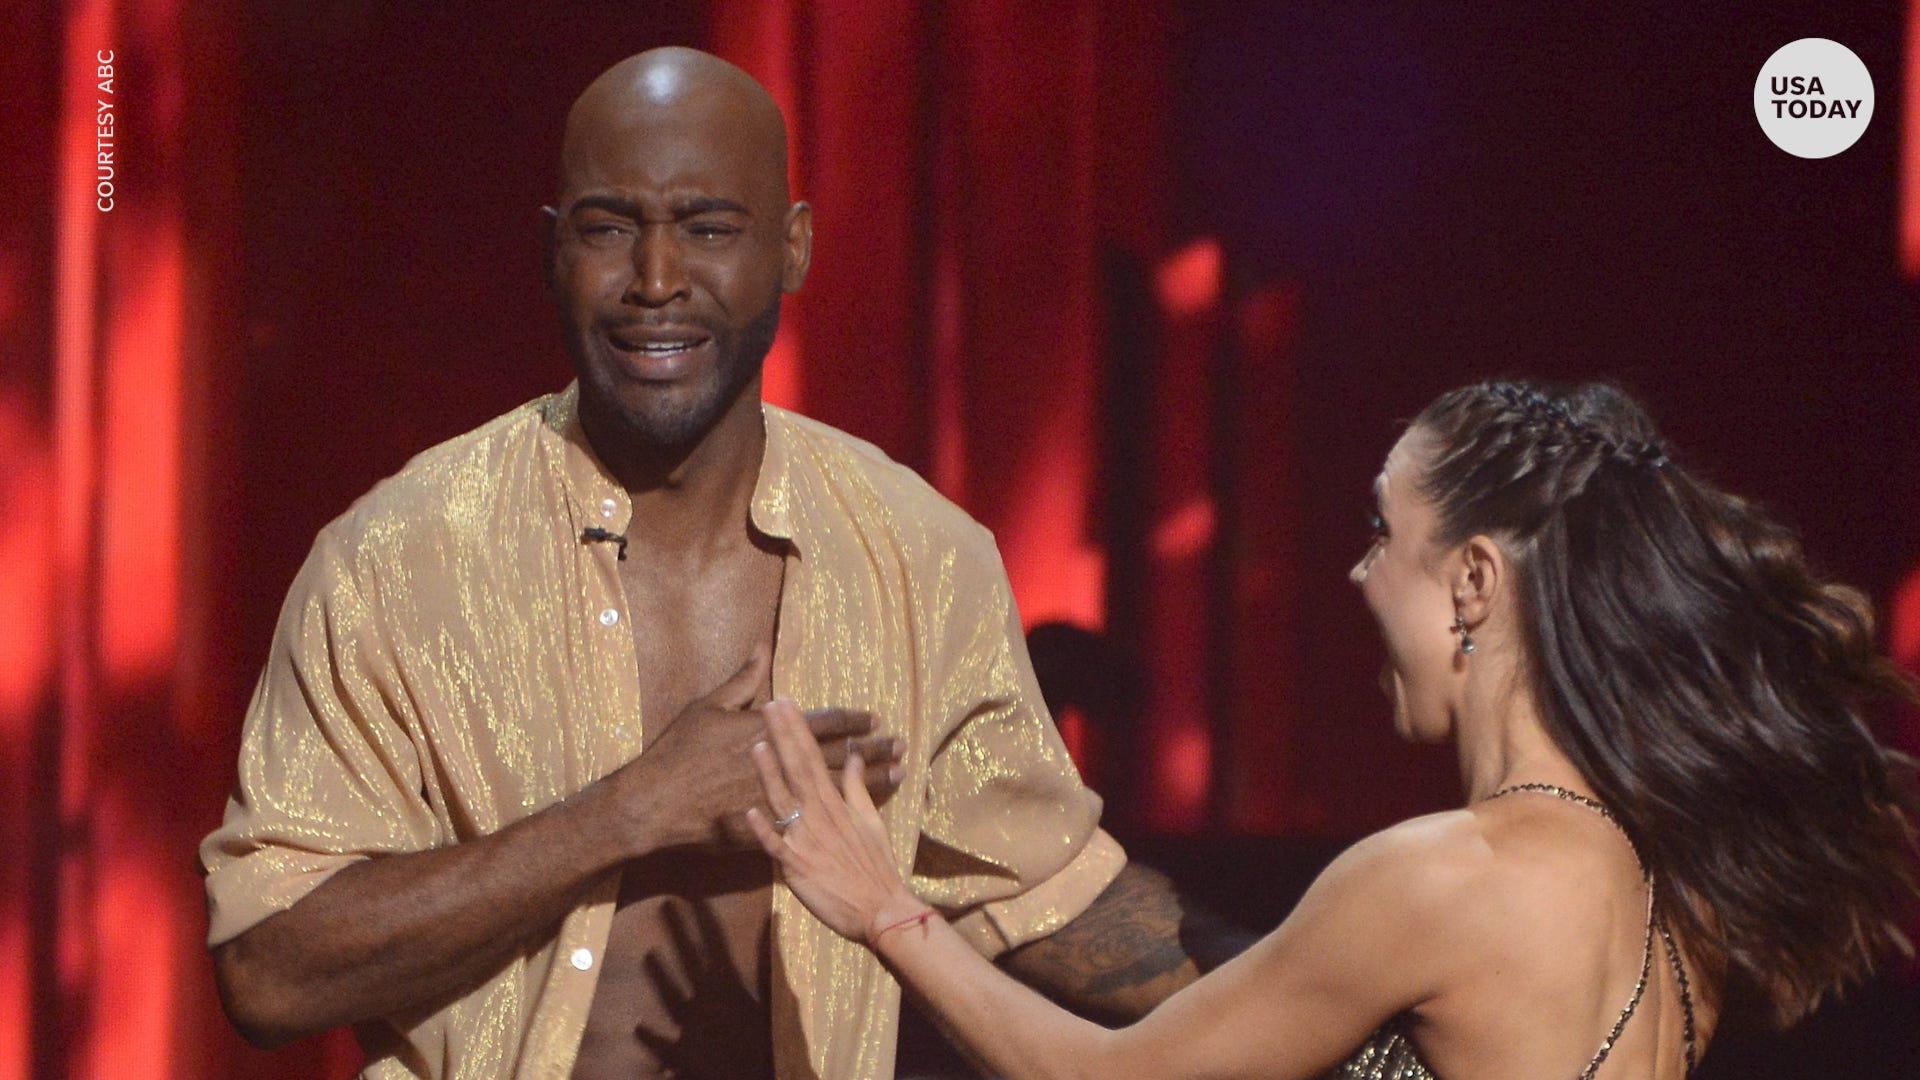 Shocking elimination leaves one Dancing with the Stars contestant in tears